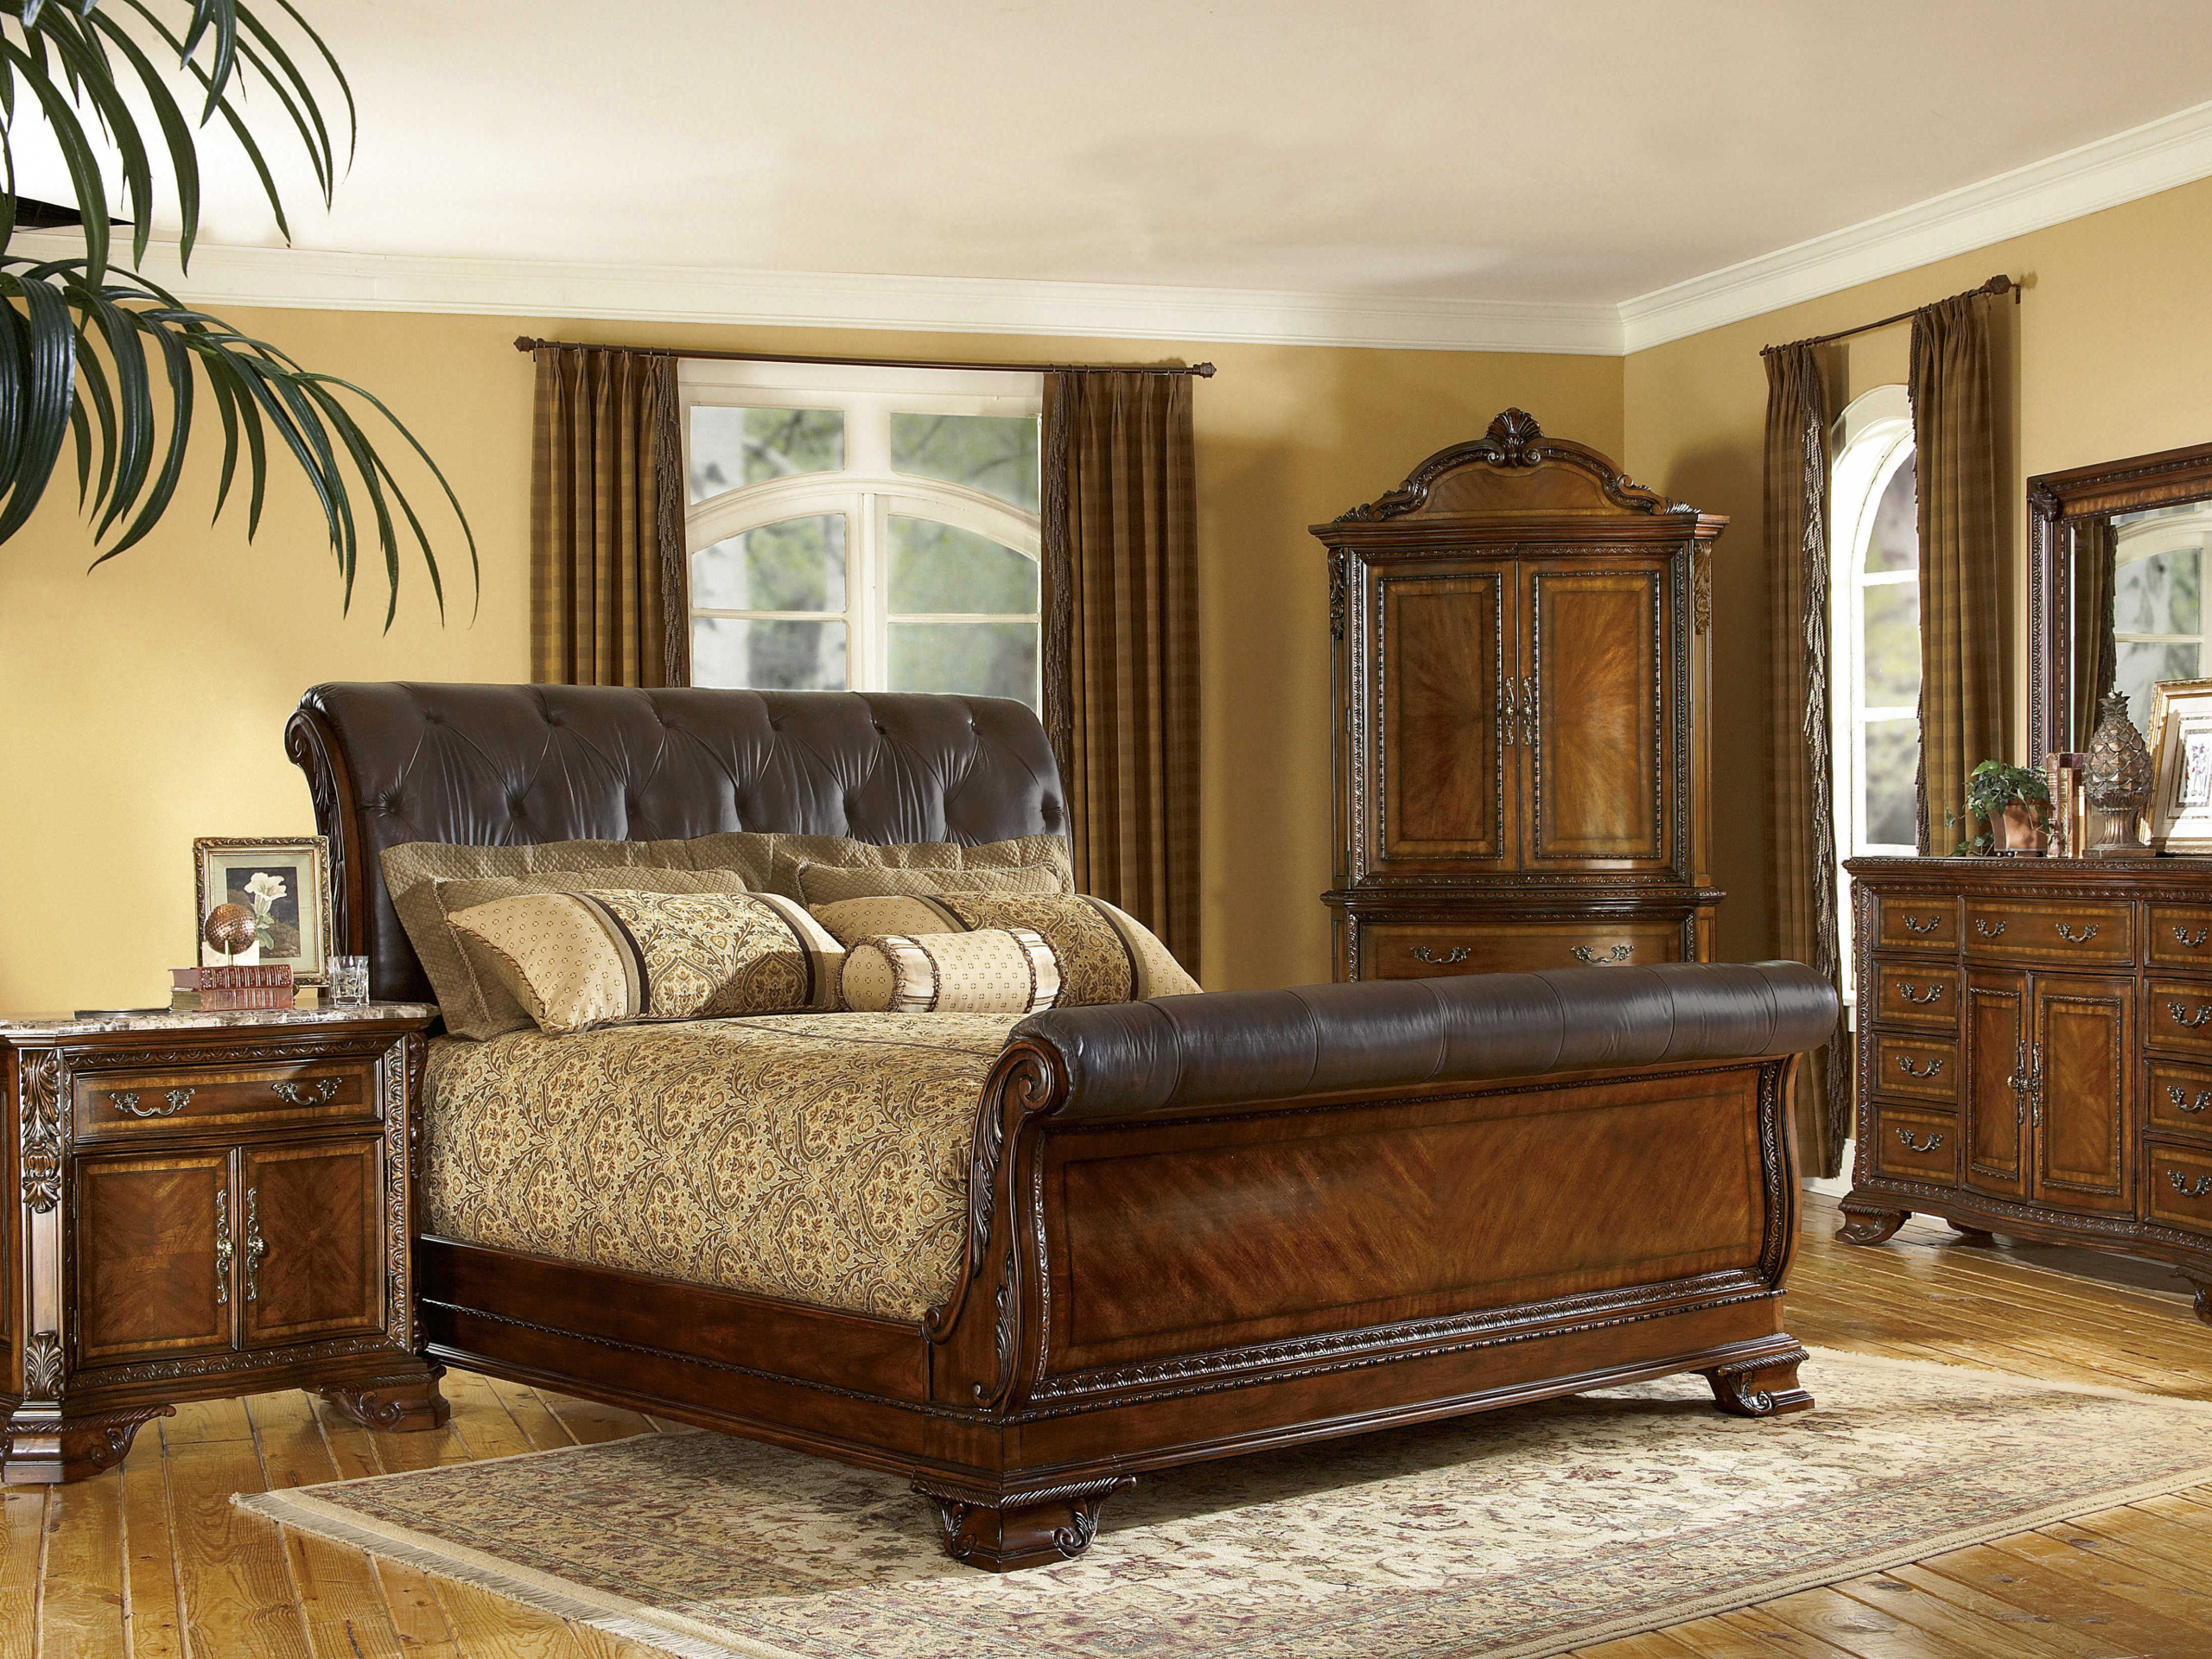 King Size 4 Piece Wood Leather Sleigh Bedroom Set